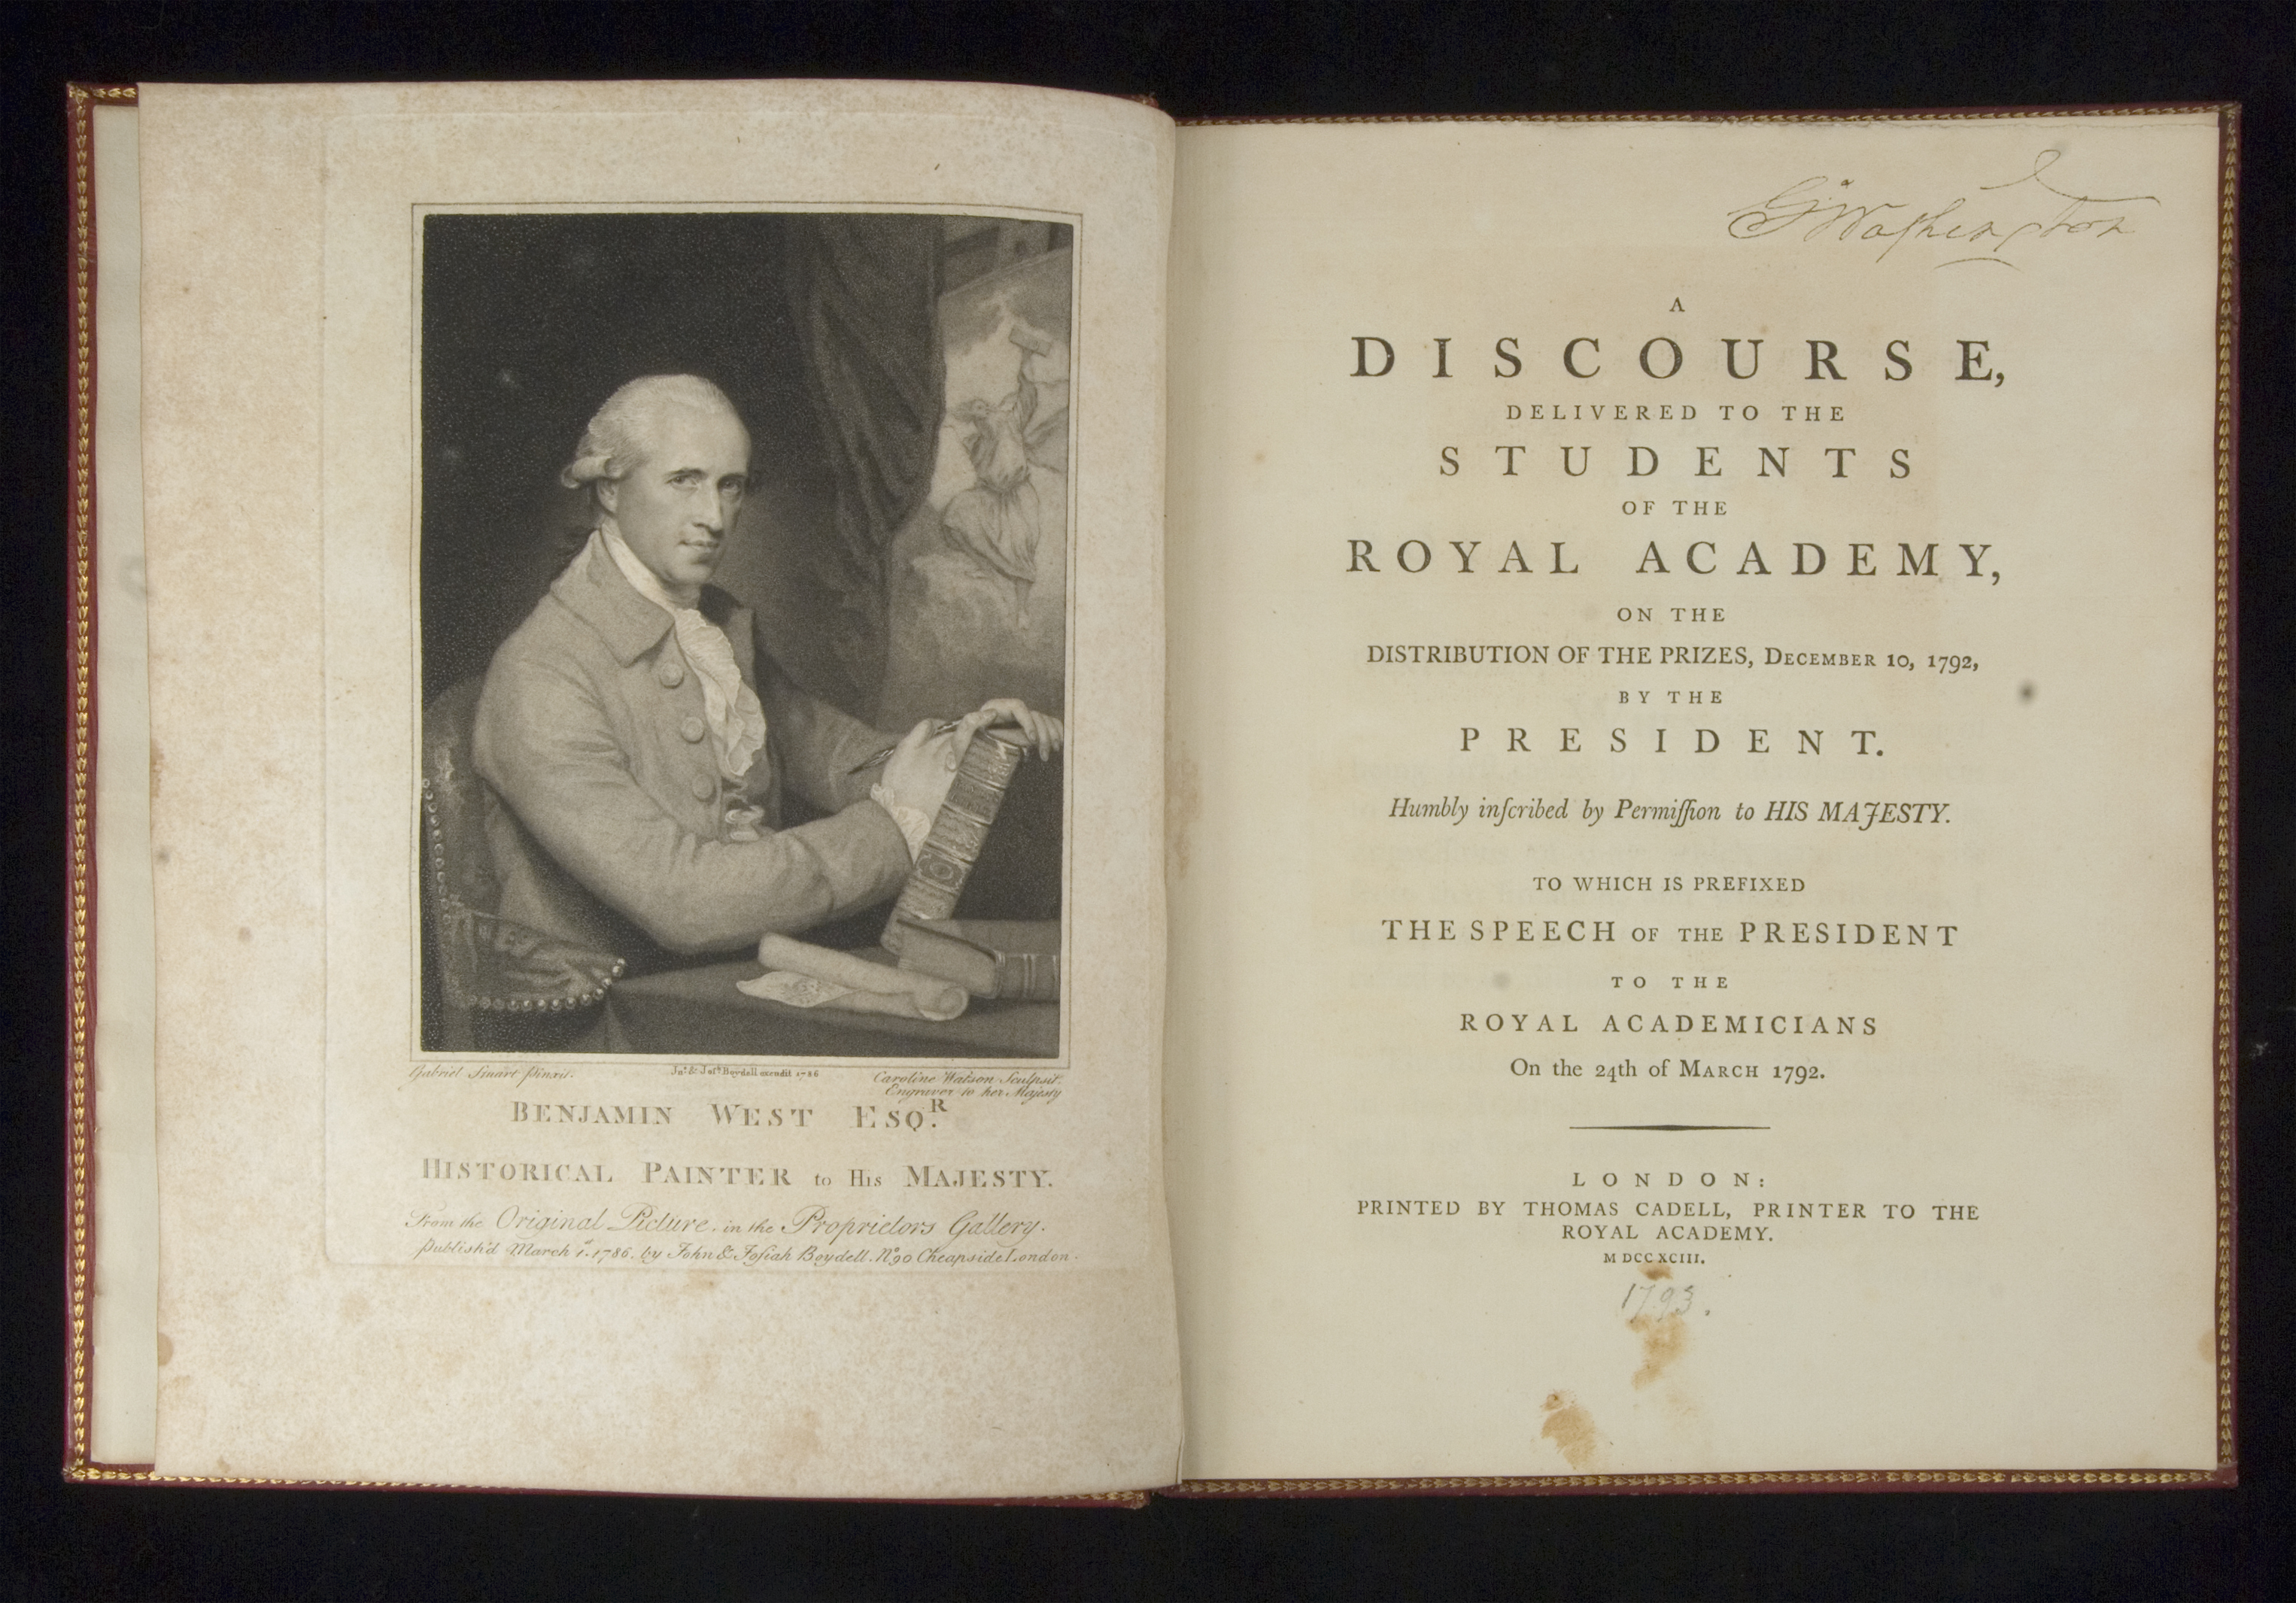 A Discourse, Delivered to the Students of the Royal Academy, Benjamin West, London: Printed by Thomas Cadell, 1793